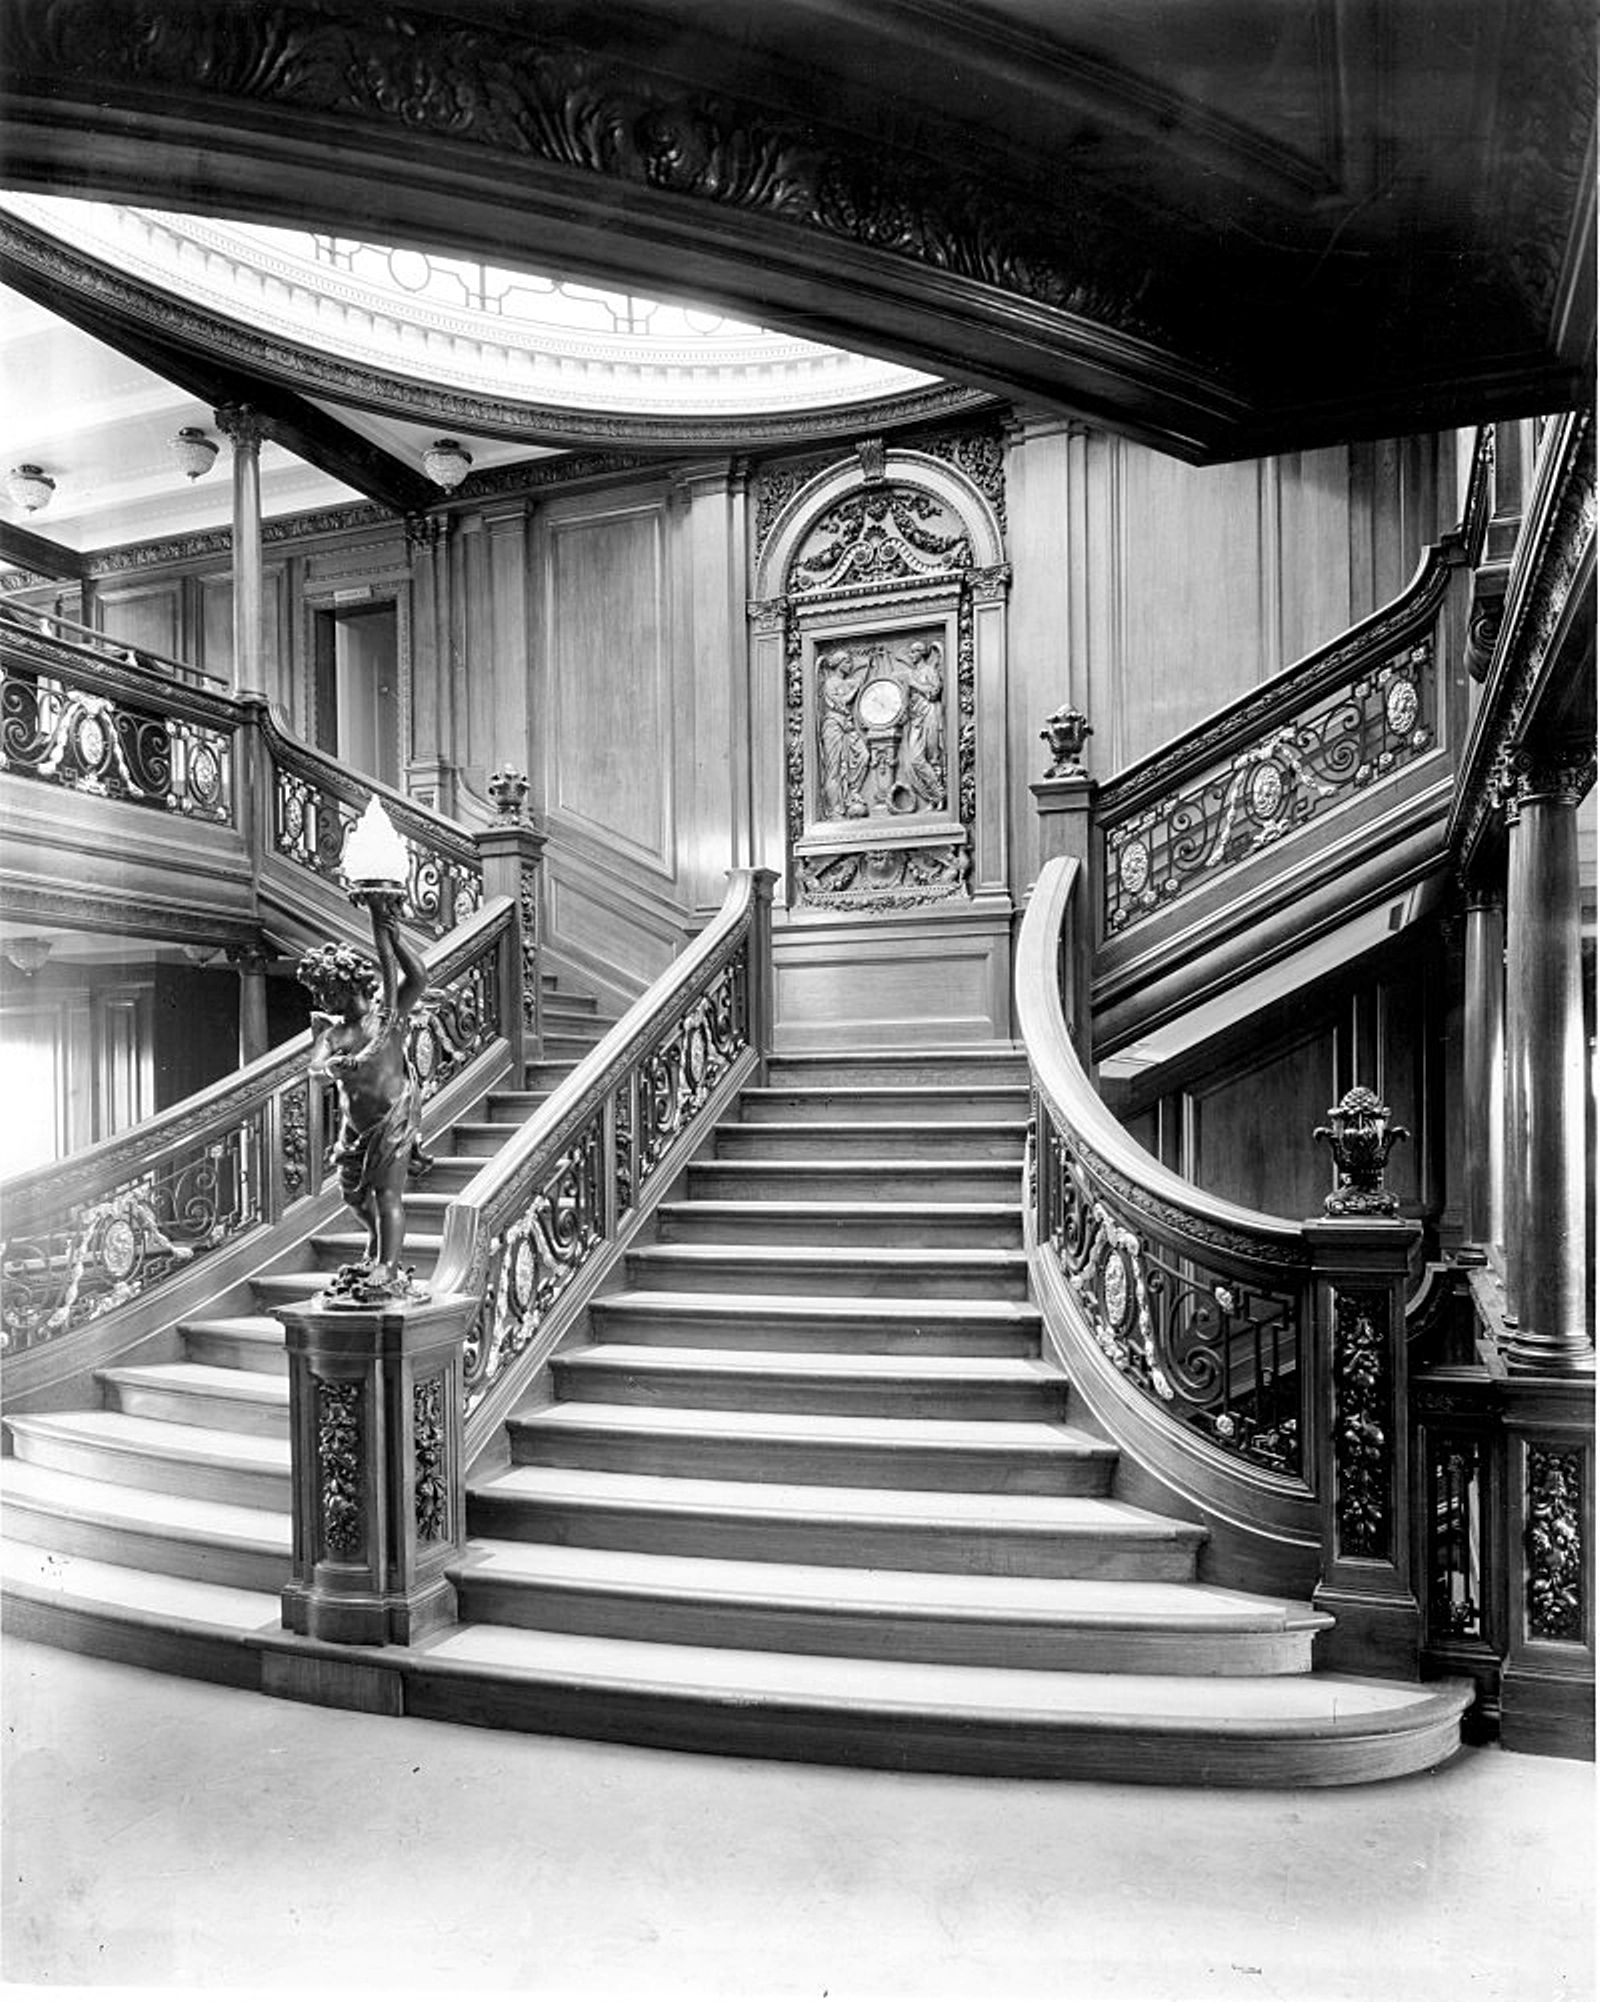 the grand stair case from rms olympic after the reestructuracion, Wohnzimmer dekoo